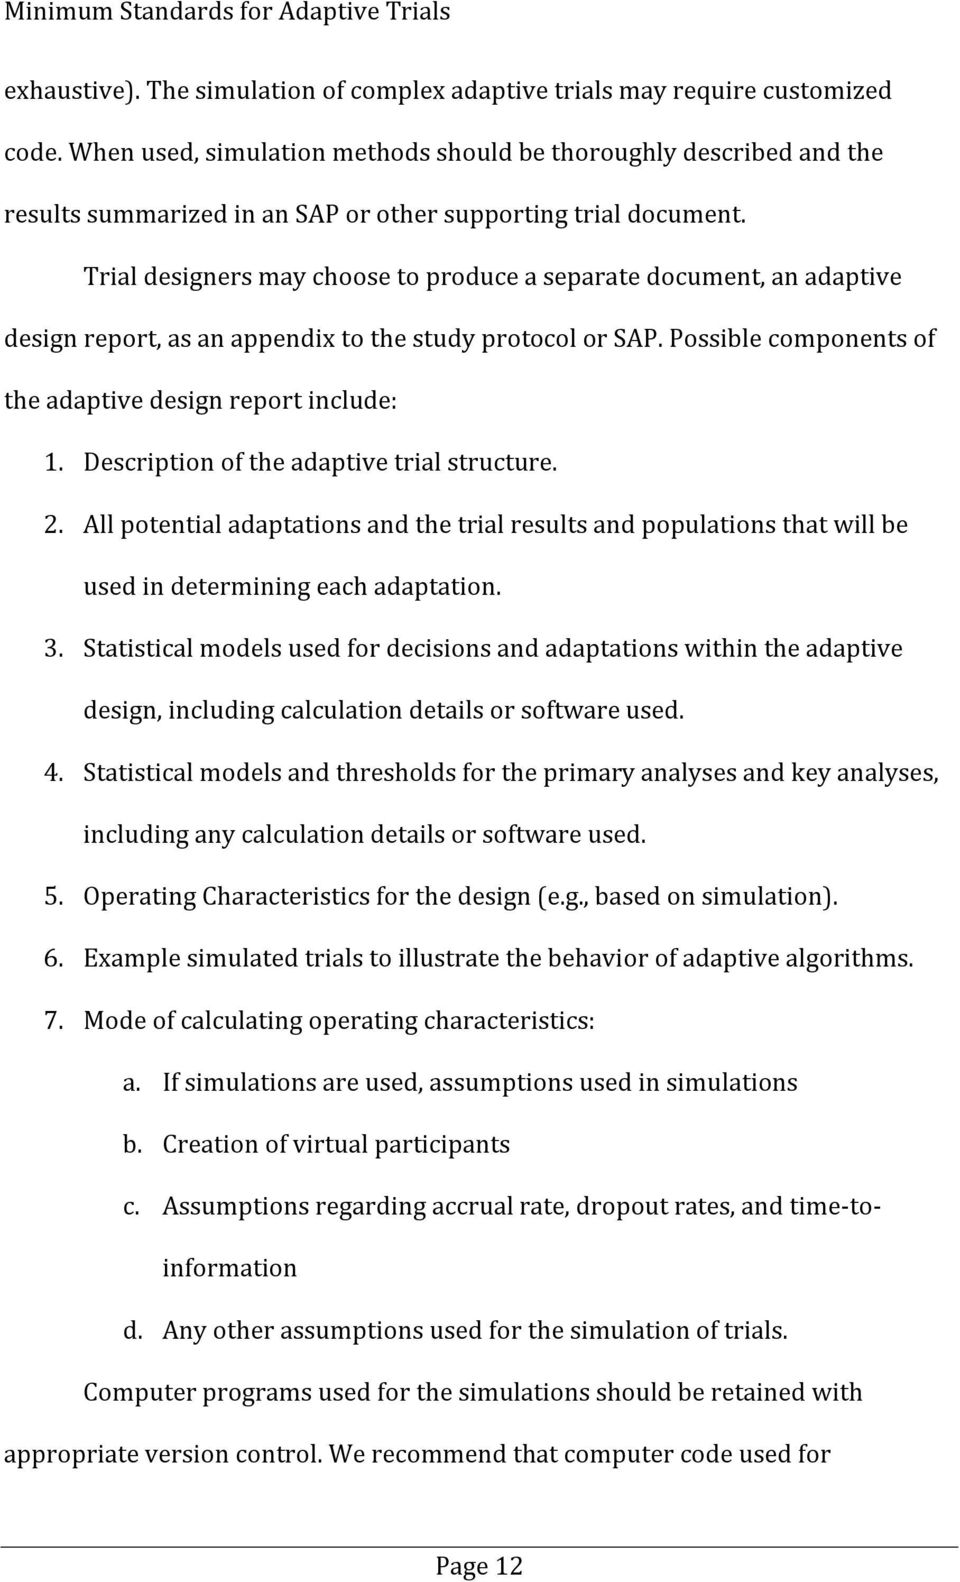 Trial designers may choose to produce a separate document, an adaptive design report, as an appendix to the study protocol or SAP. Possible components of the adaptive design report include: 1.